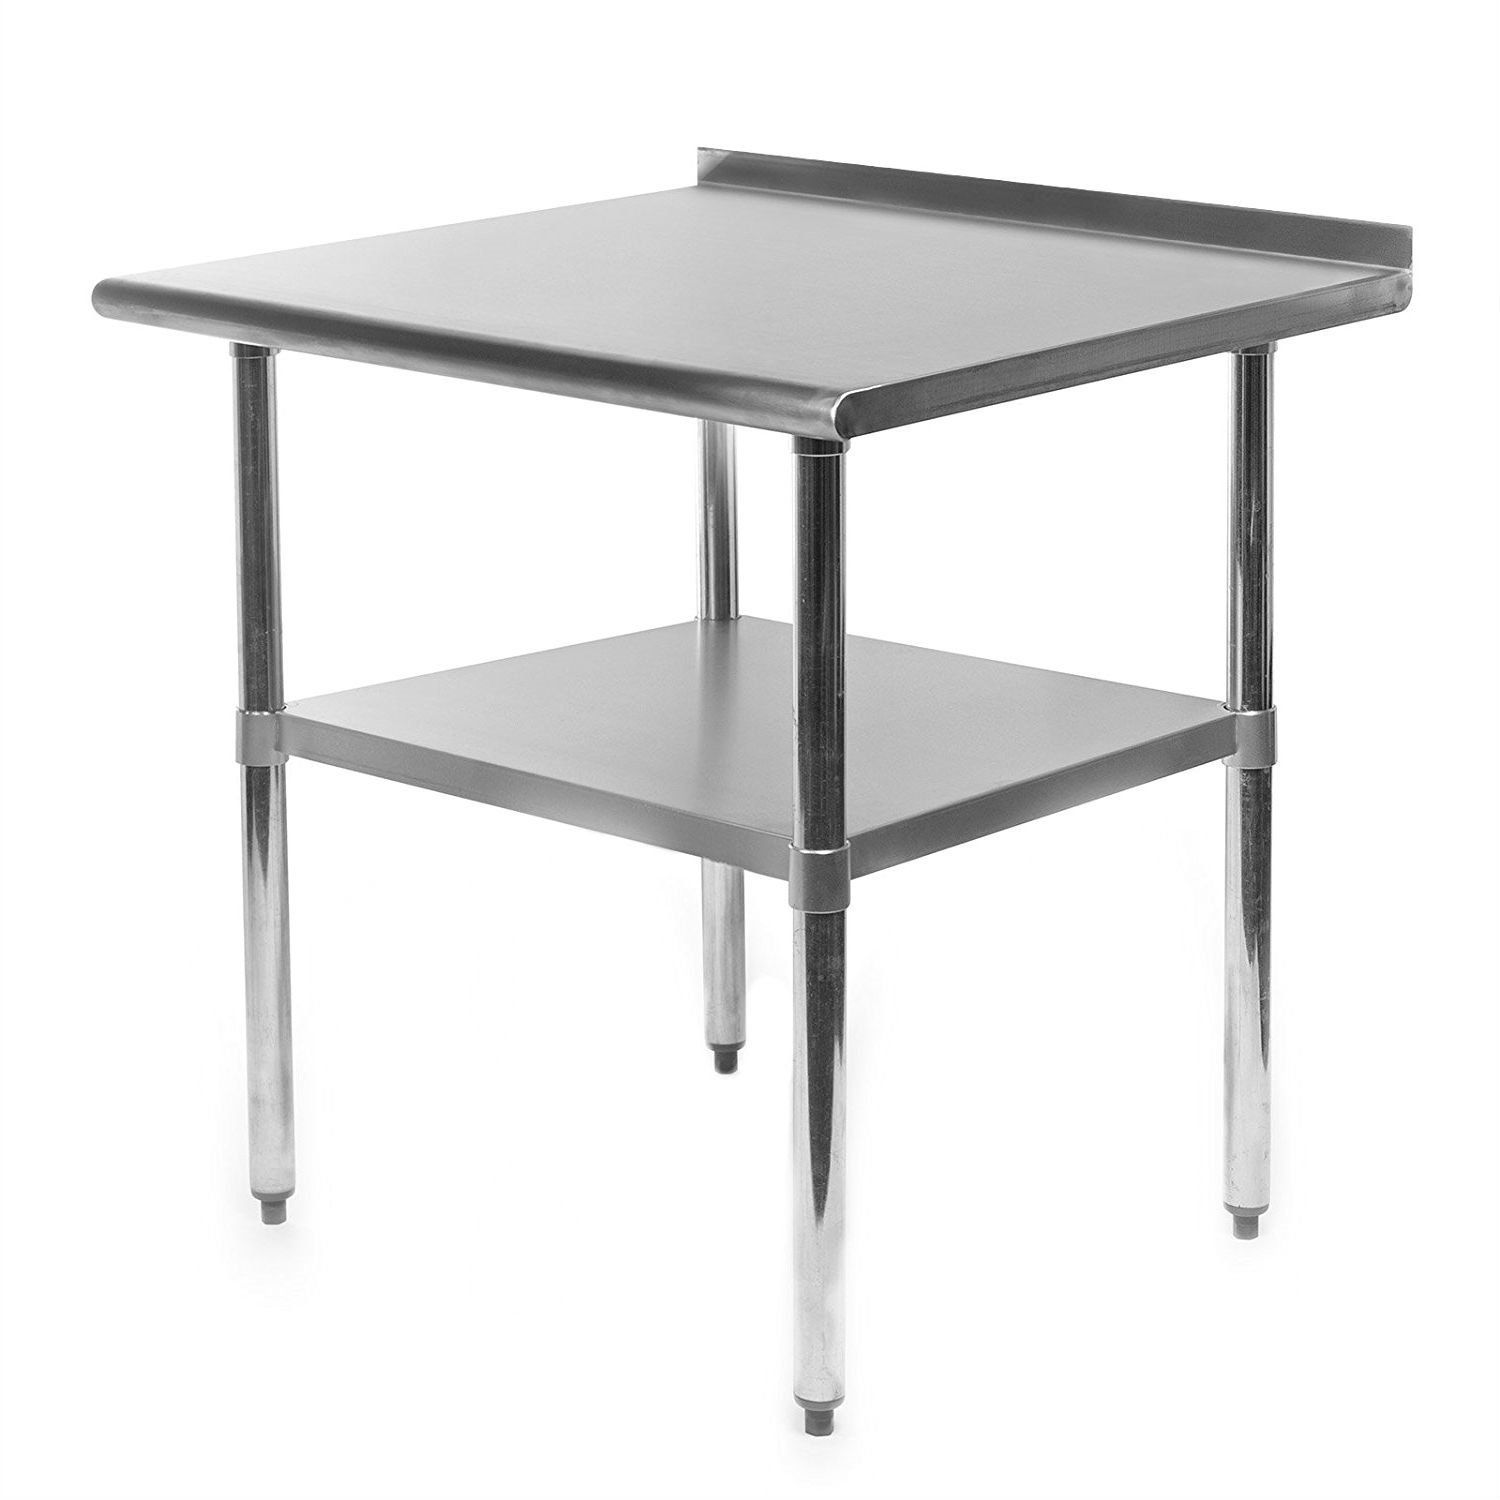 Heavy Duty 30 X 24 Inch Stainless Steel Restaurant Kitchen Prep Work Table With Backsplash Kitchen Work Tables Stainless Steel Table Kitchen Prep Table